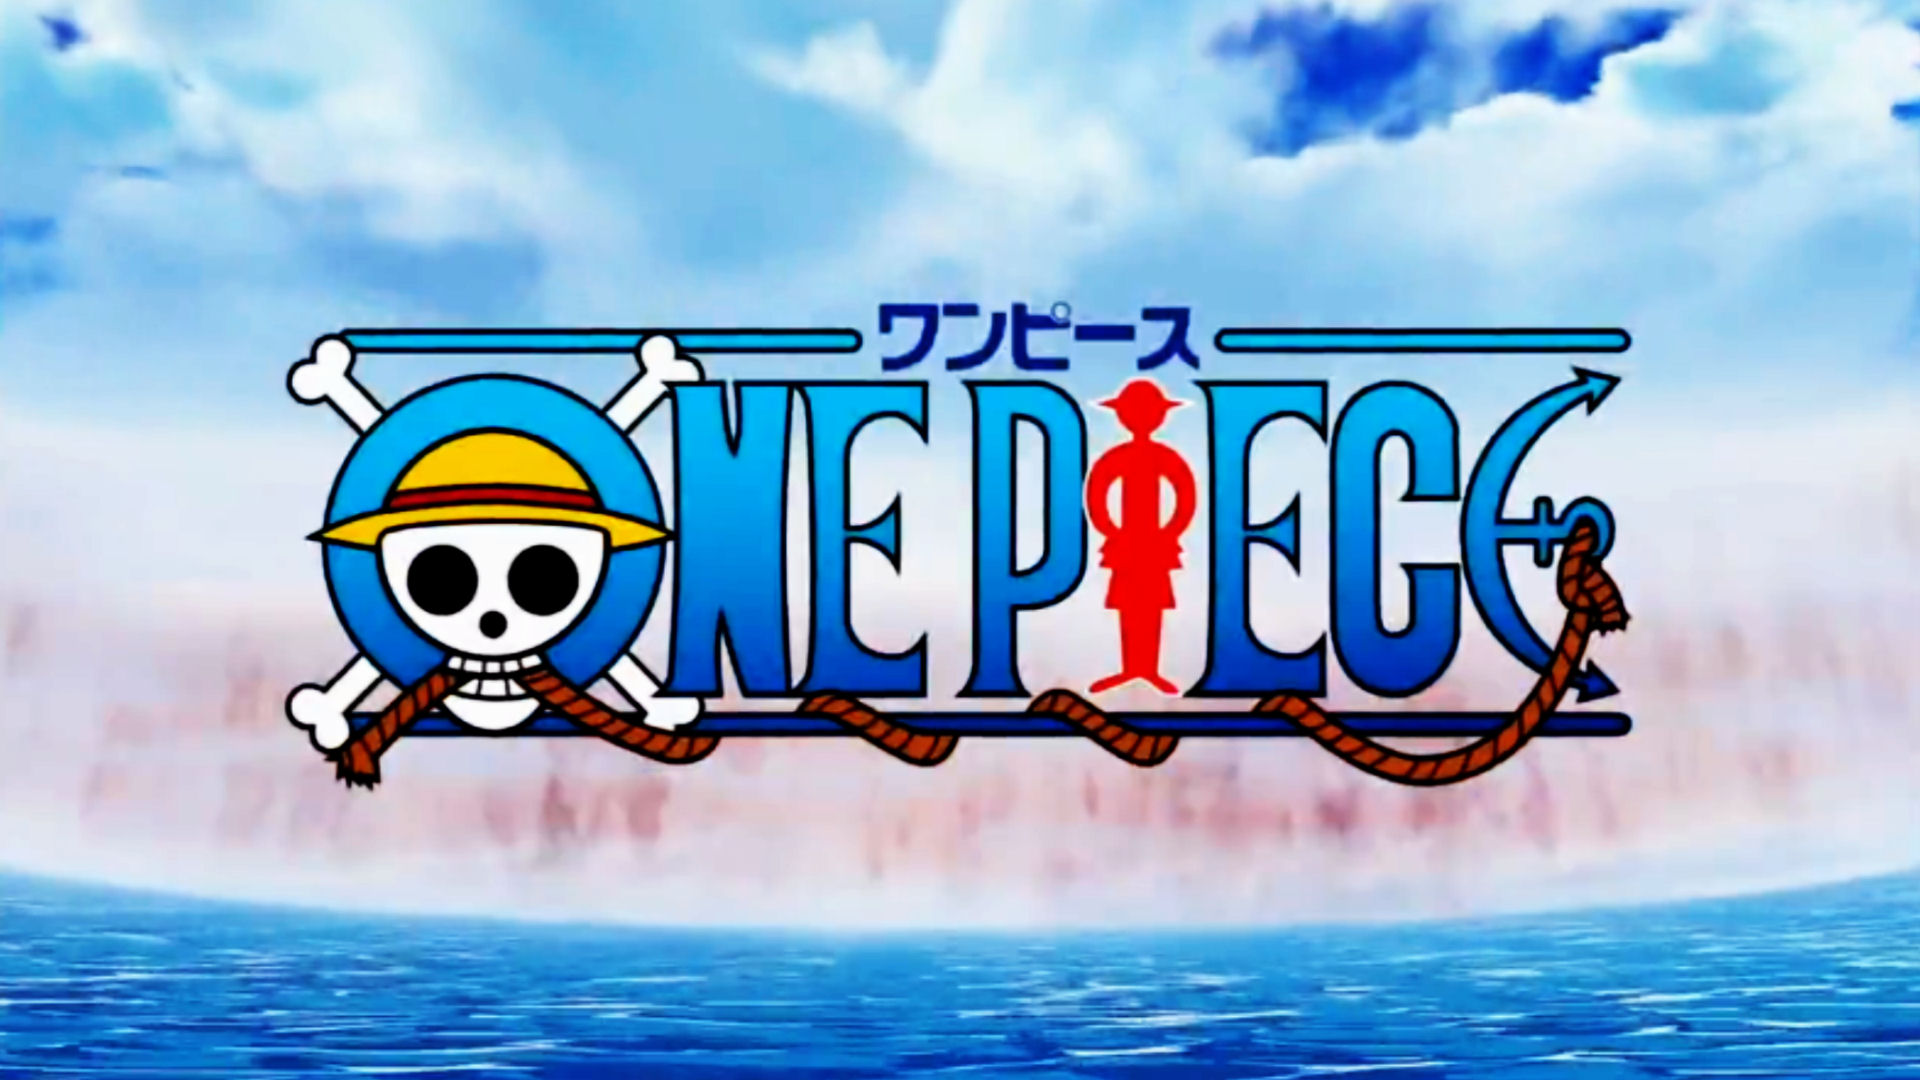 One piece wallpapers high quality download free - One piece wallpaper hd for android ...